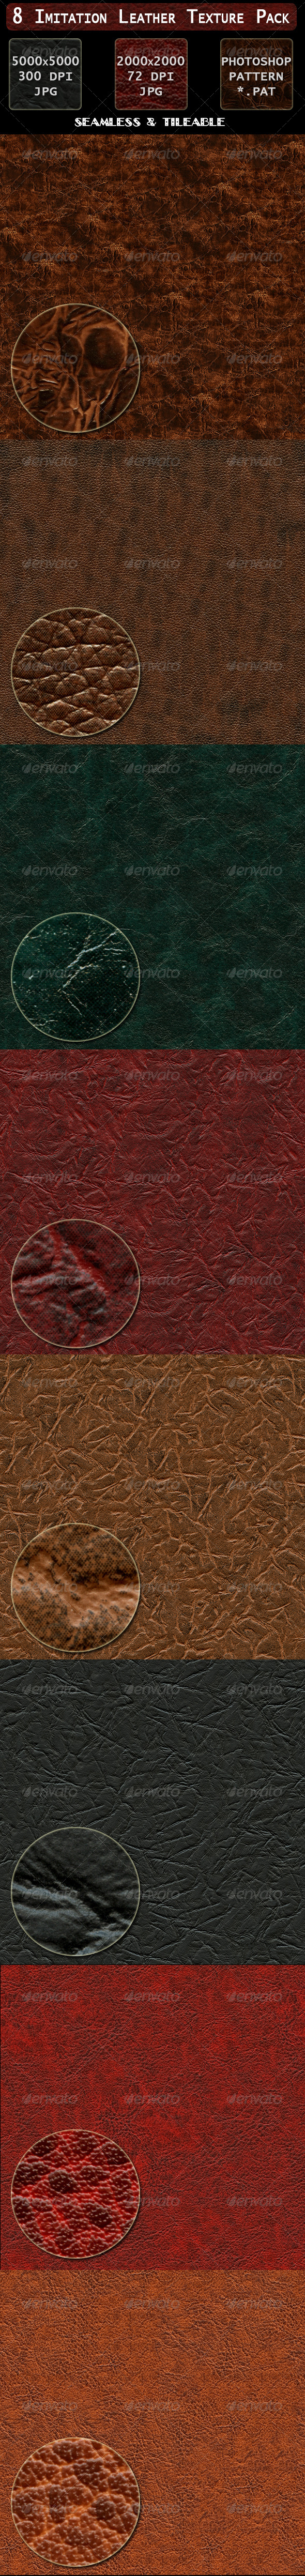 GraphicRiver 8 Imitation Leather Texture Pack 4485341